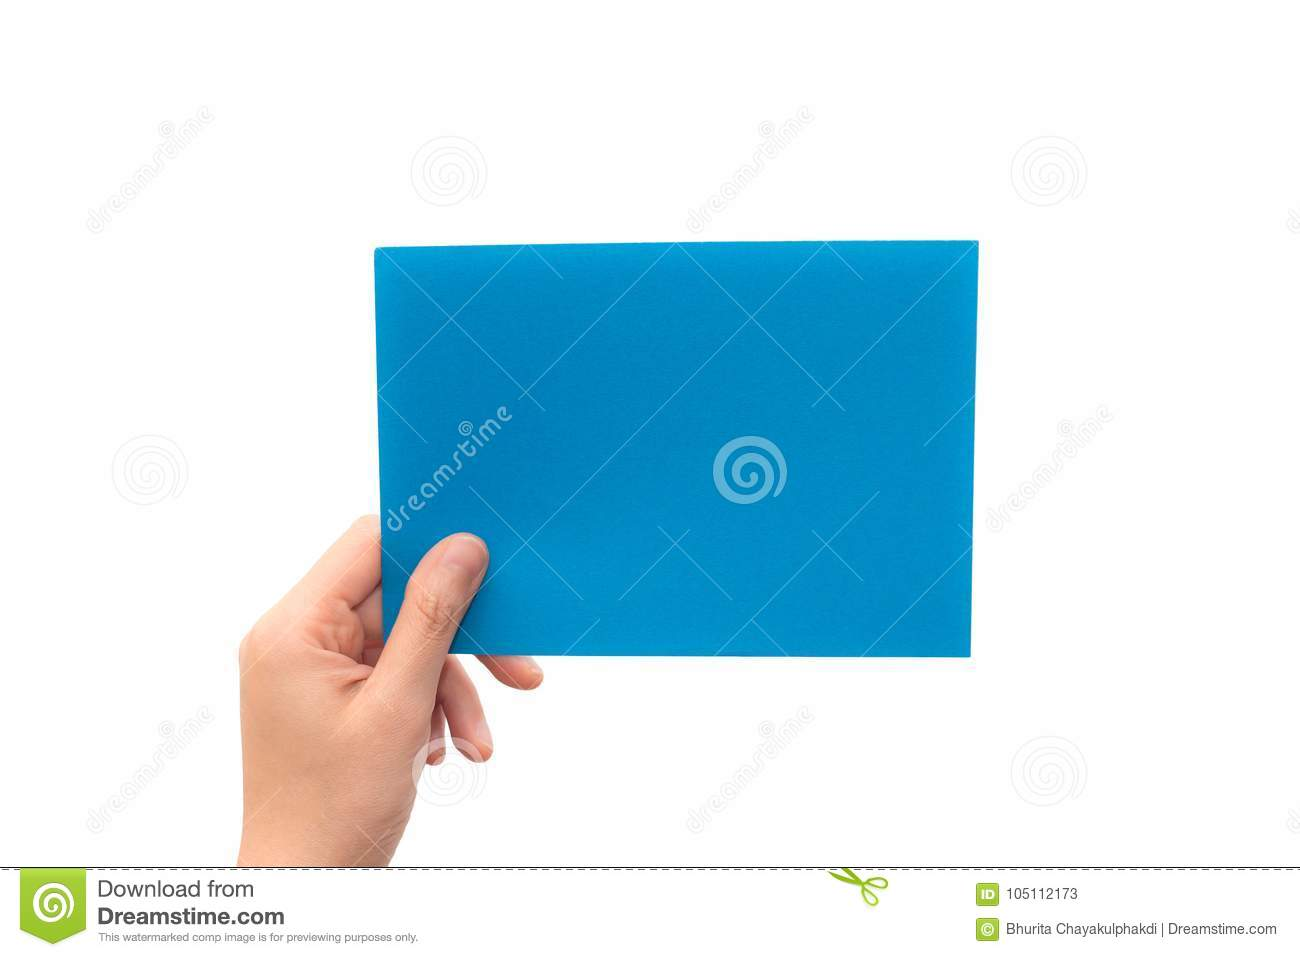 download human hand hold virtual business card stock image image of giving business - Virtual Business Card